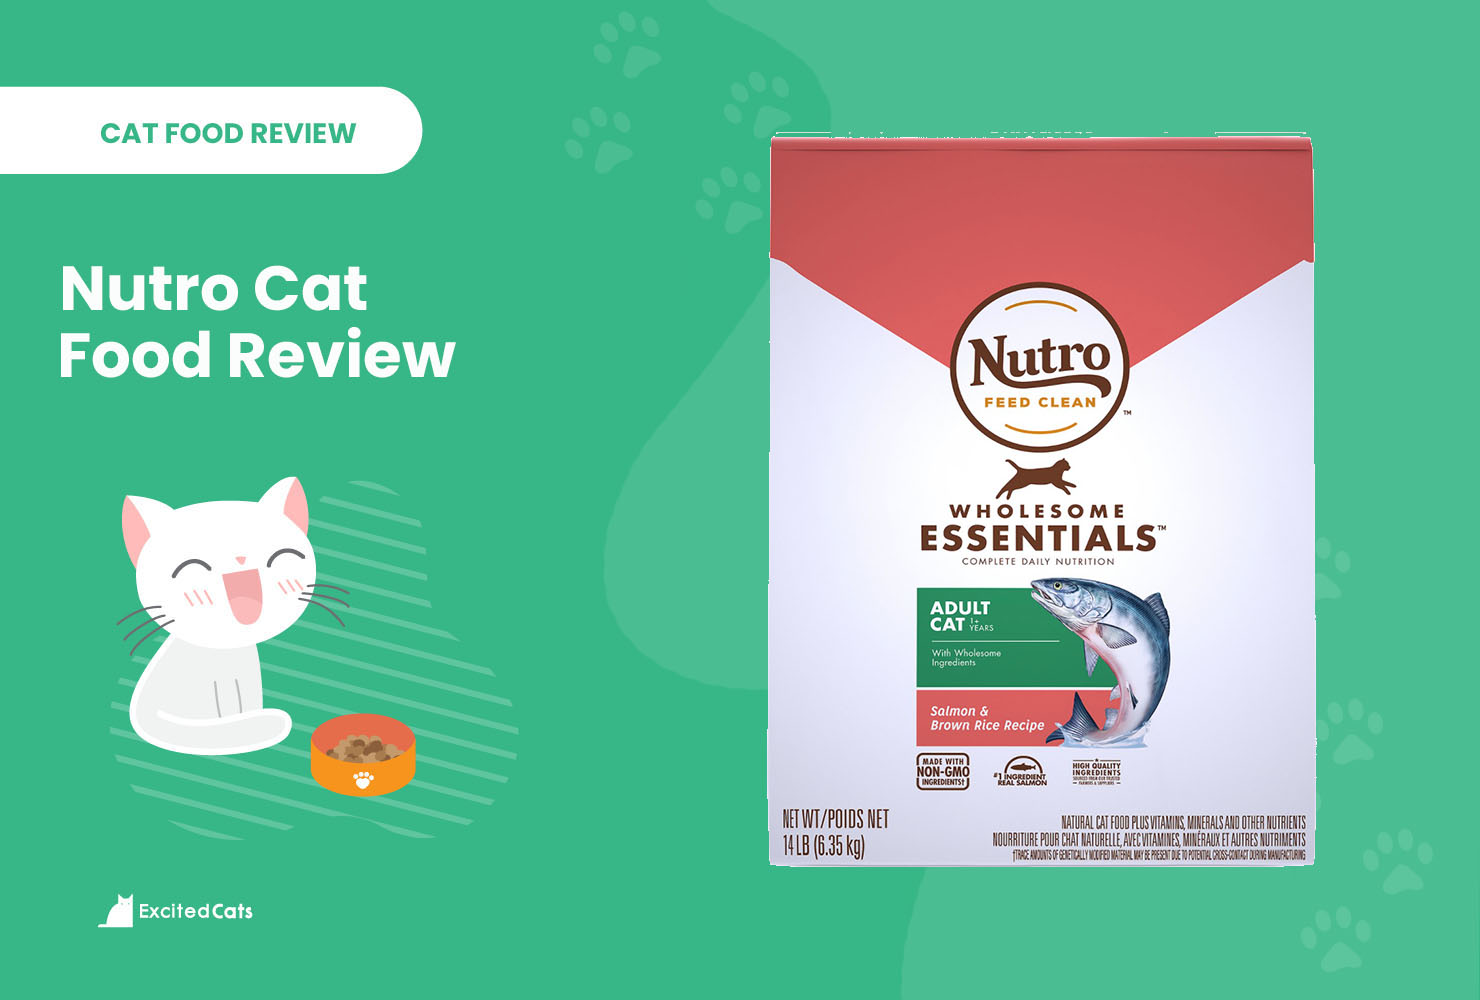 nutro cat food review